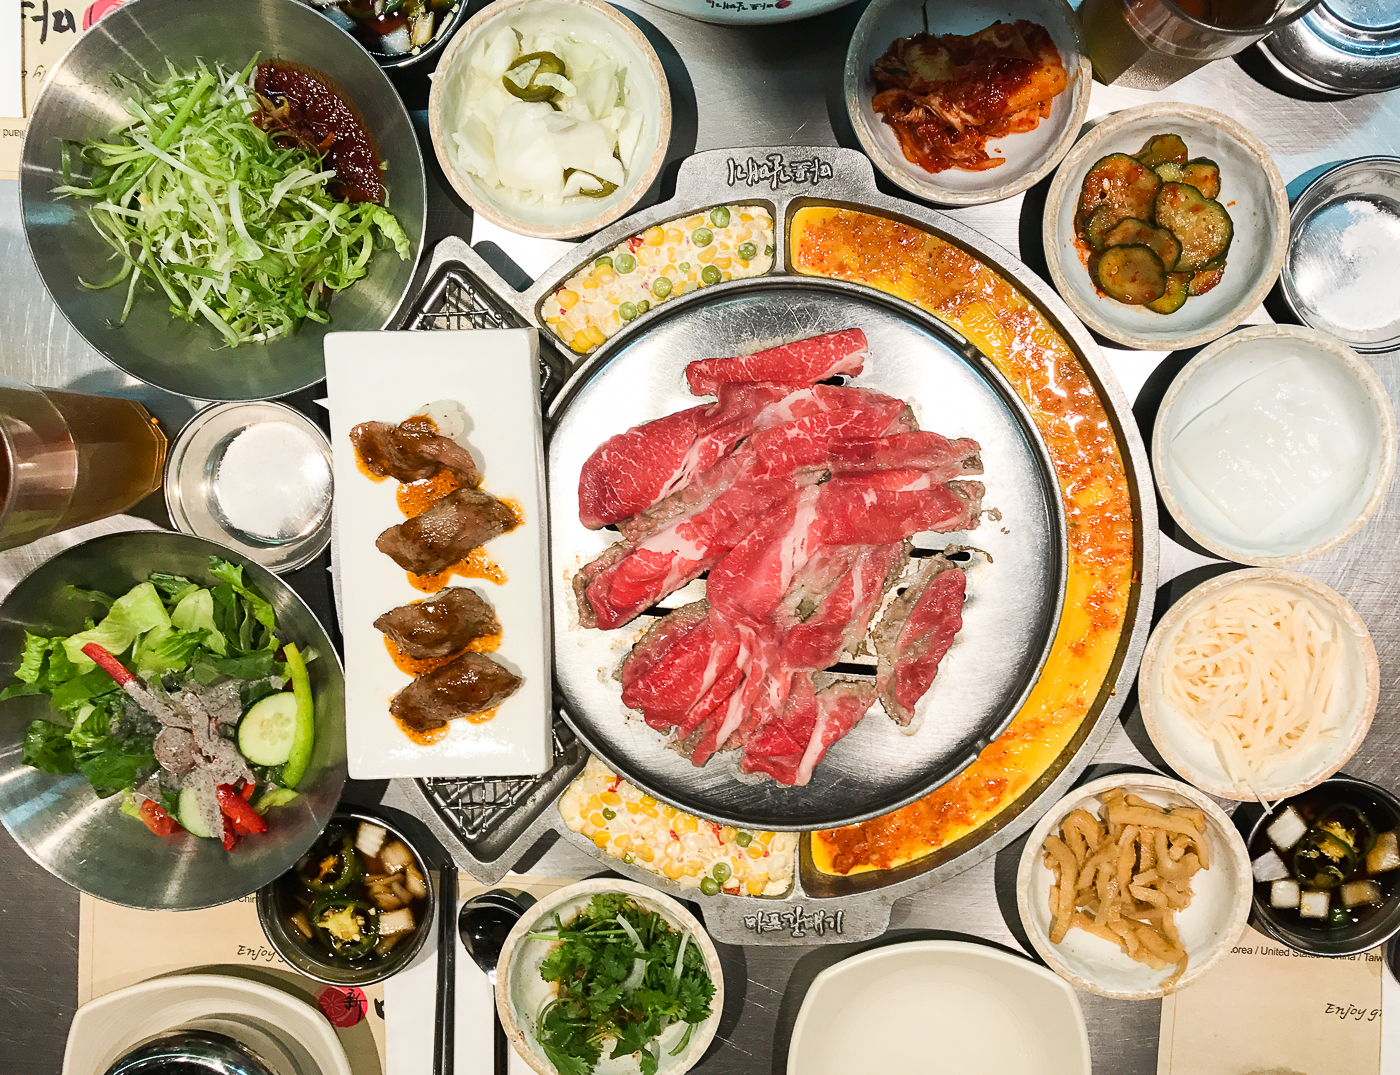 Magal BBQ - LA Food Guide | The Chic Diary